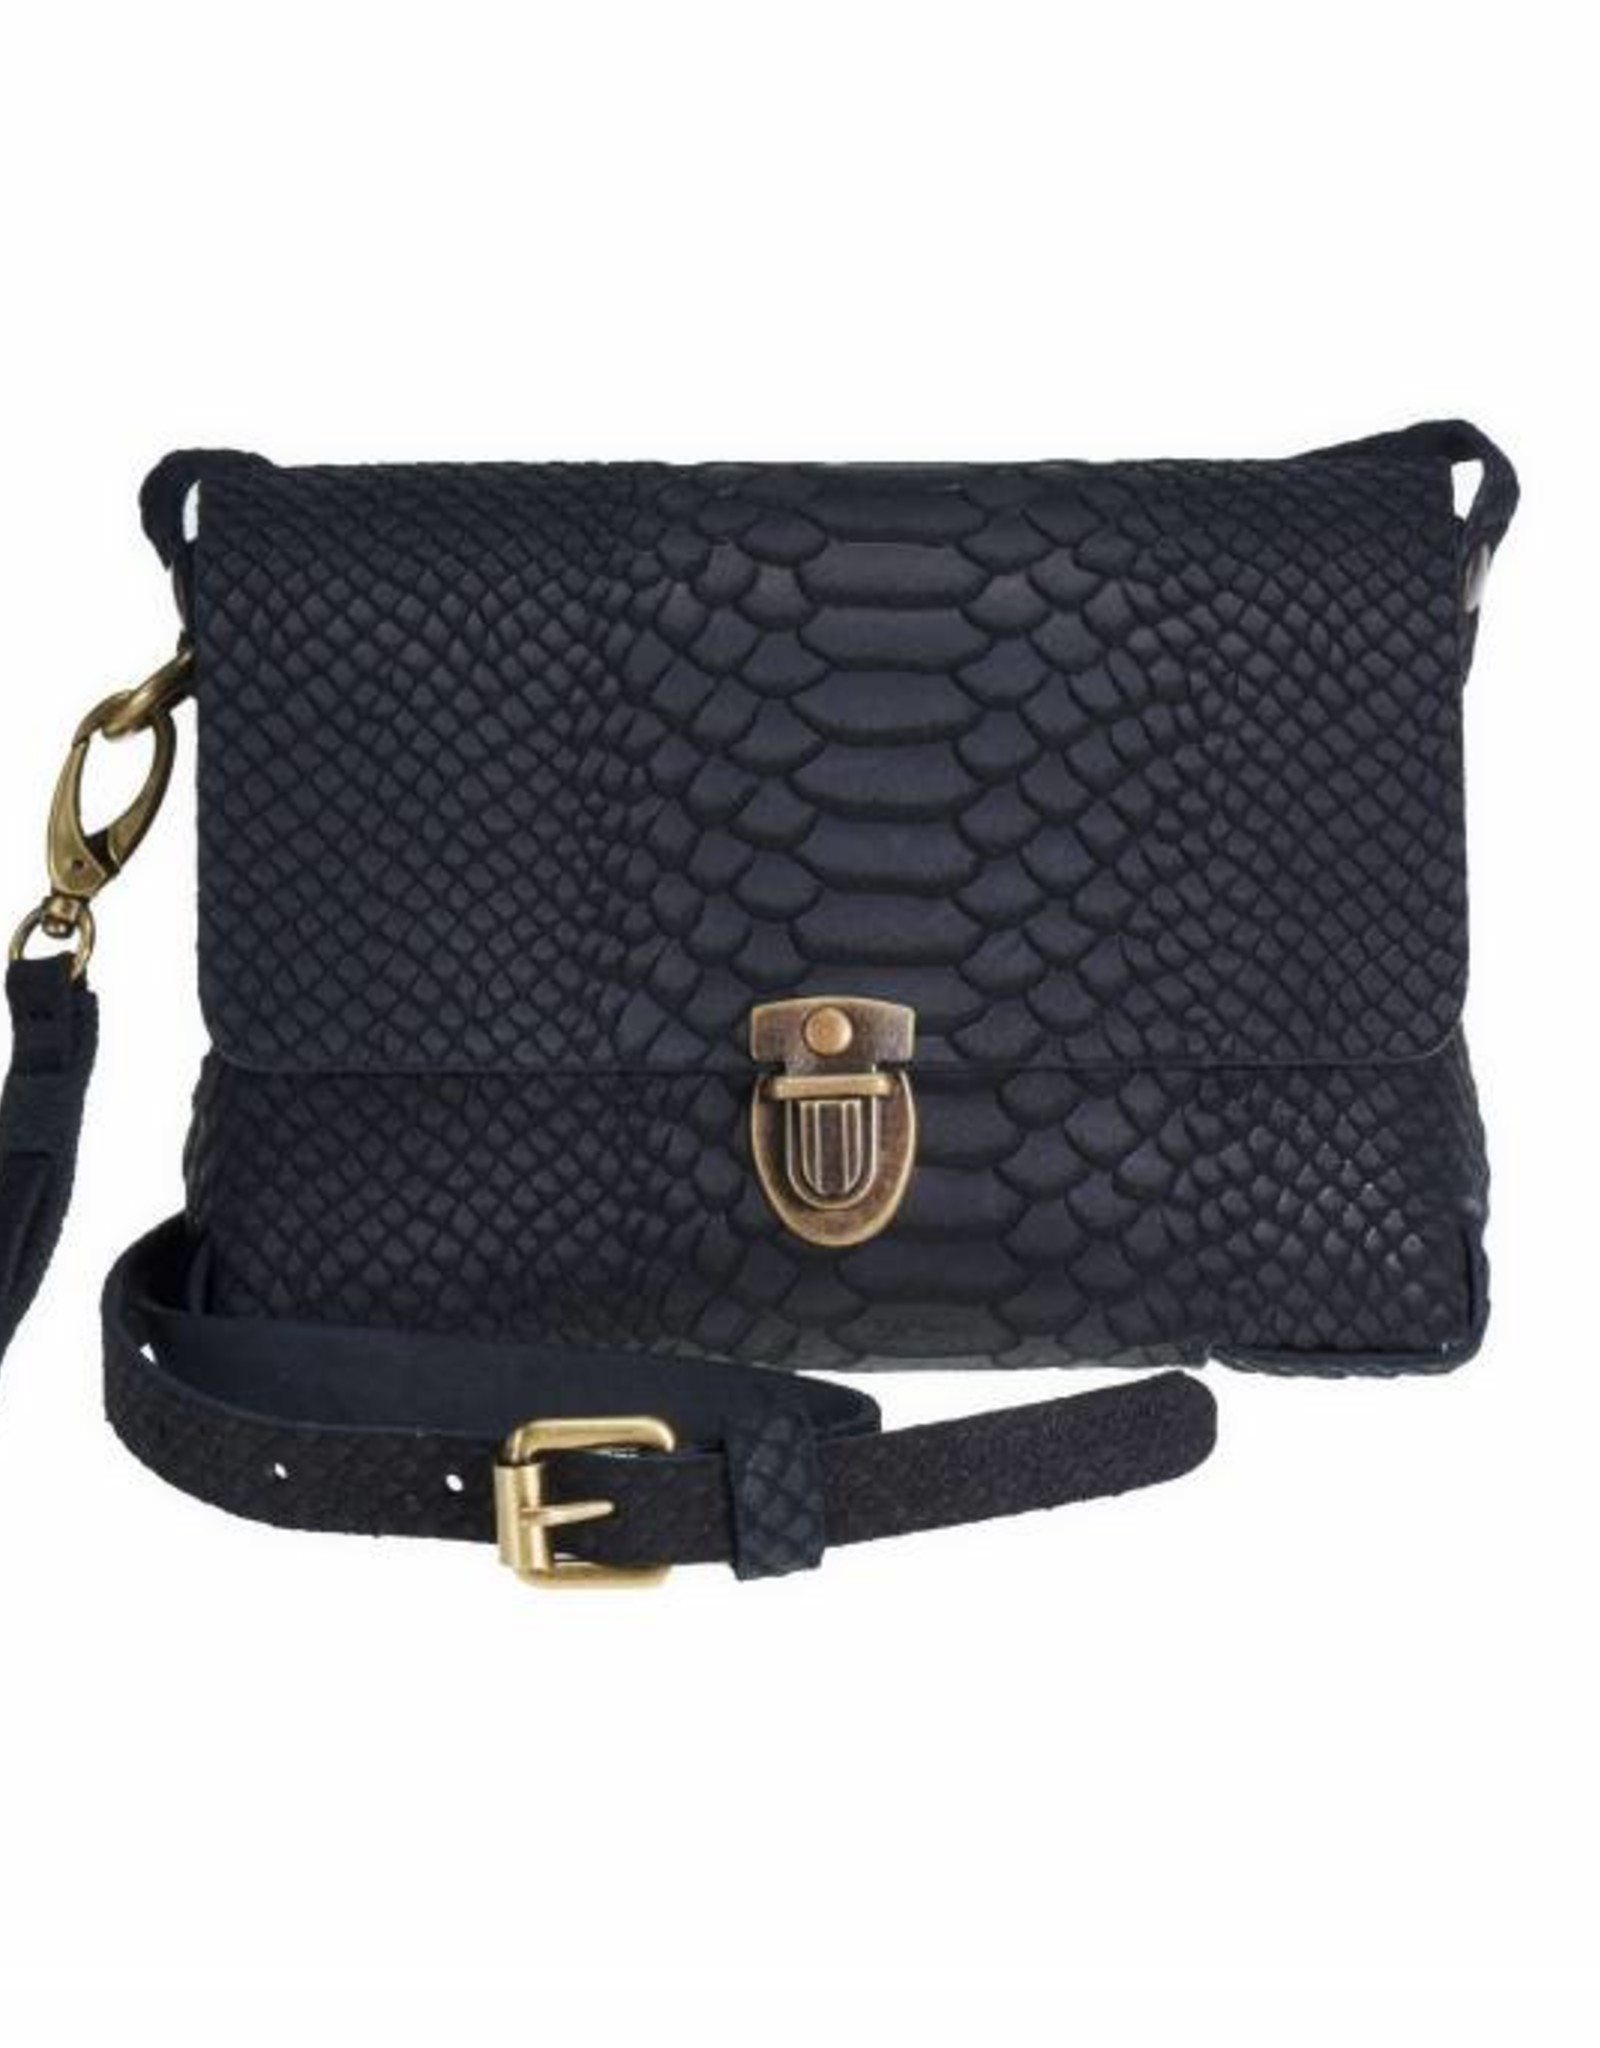 Elvy Elvy Bag Gloria Scale Black